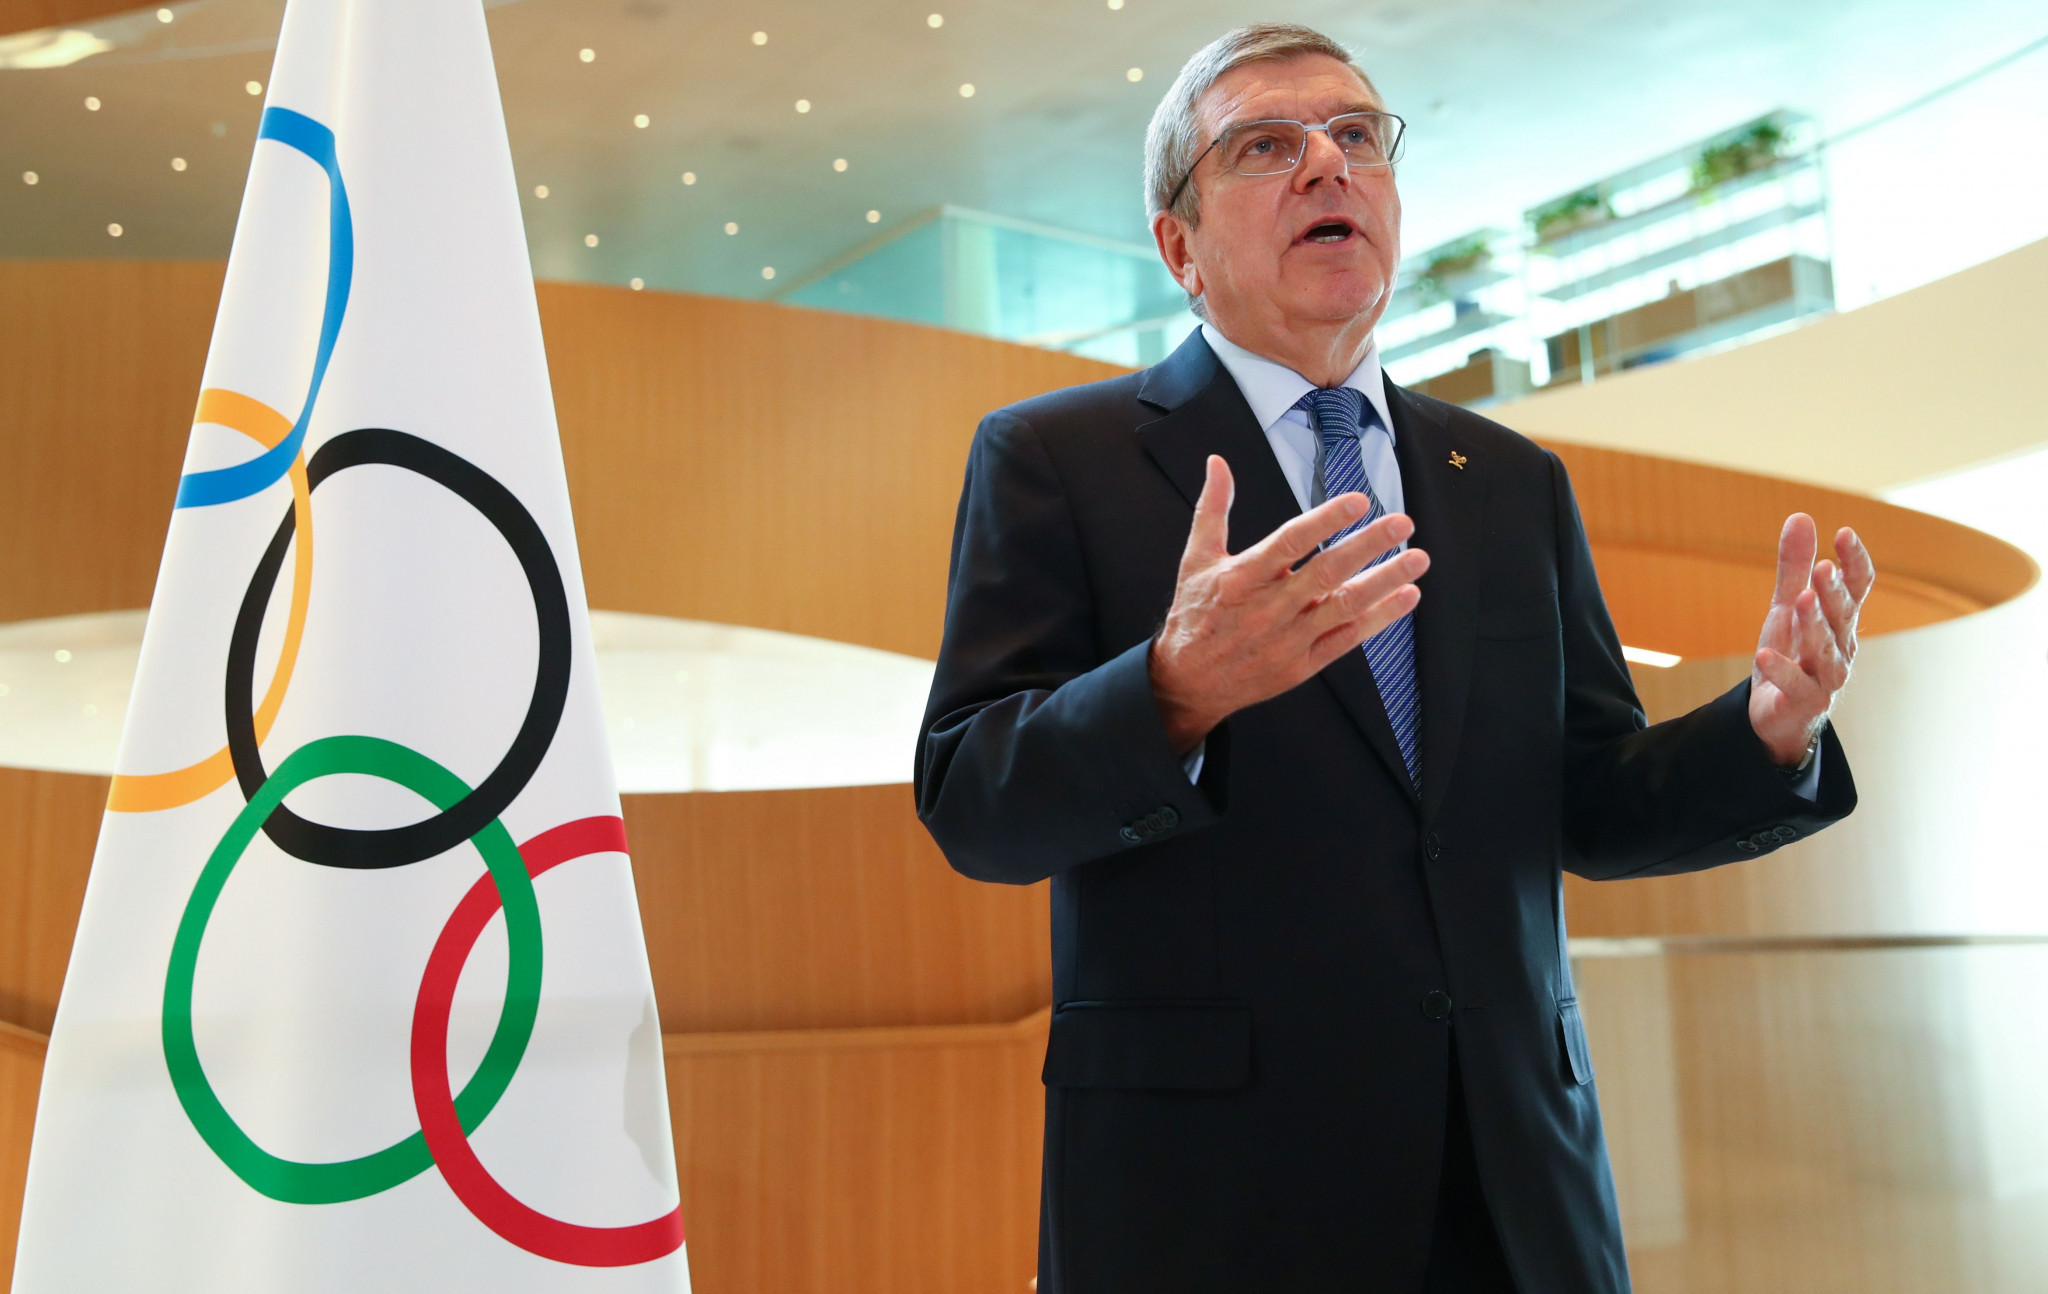 IOC President Thomas Bach has acknowledged Tokyo 2020 would be cancelled if the Games are not held in 2021 ©Getty Images